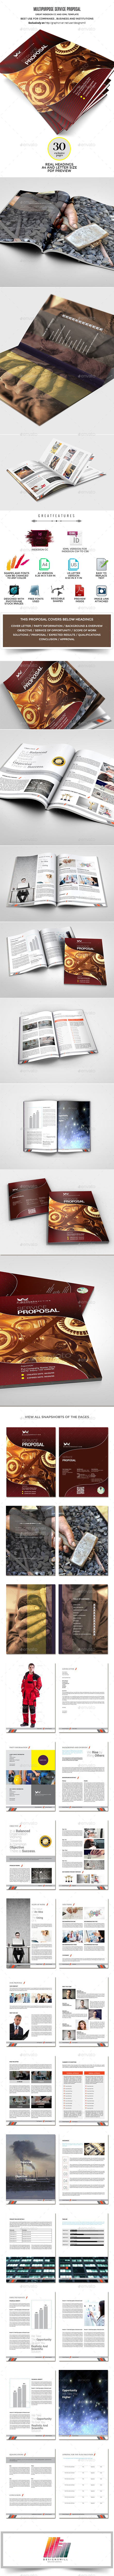 Wings Multipurpose InDesign Service Proposal - Proposals & Invoices Stationery